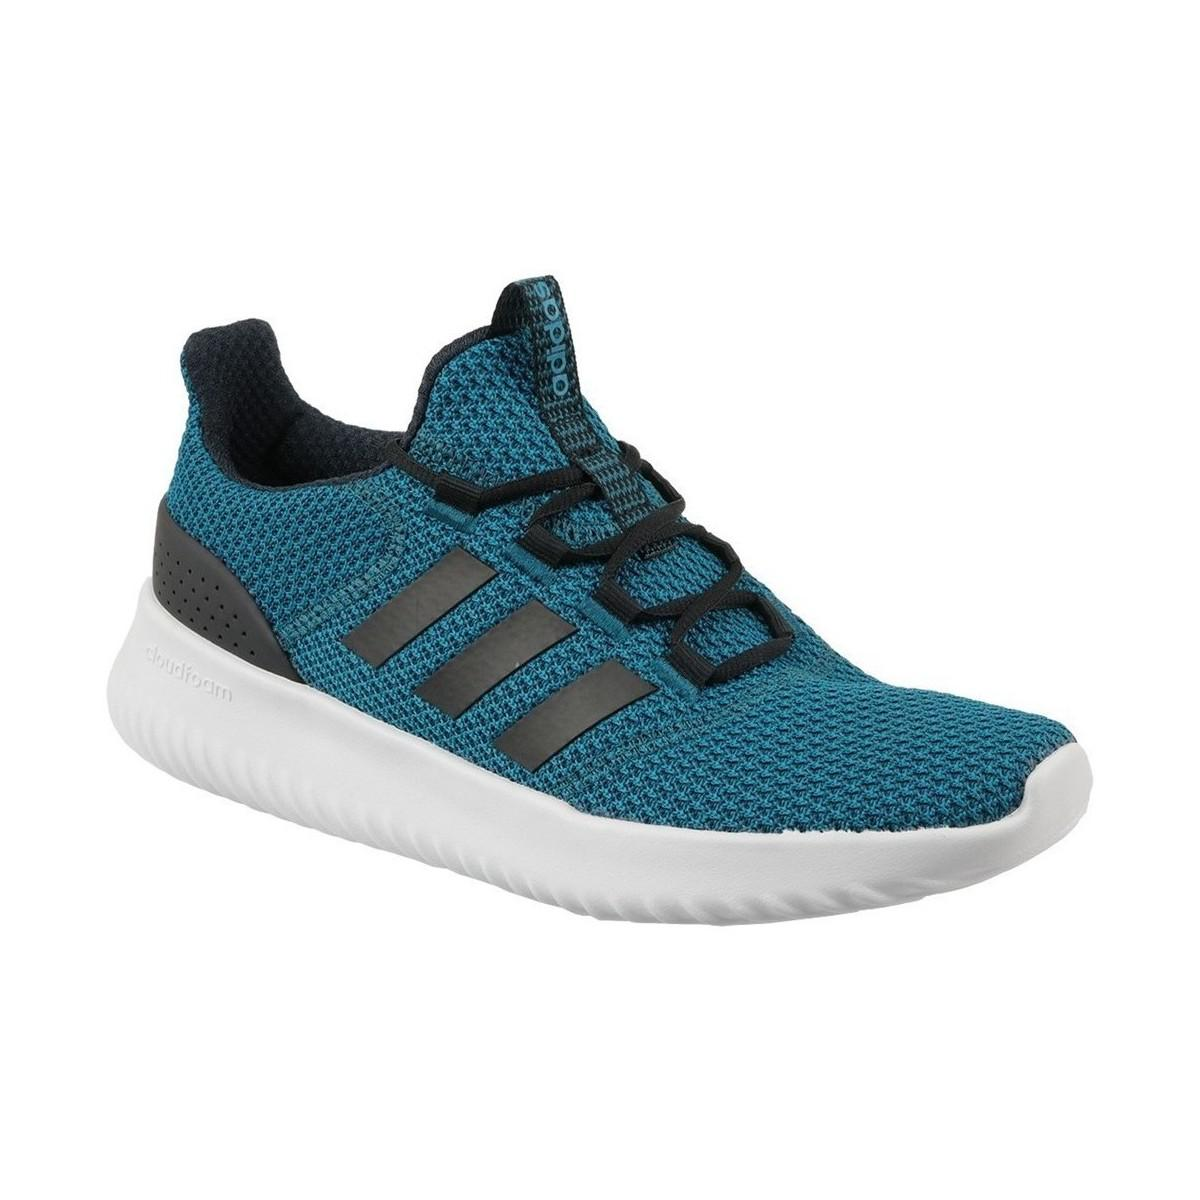 adidas Cloudfoam Ultimate Men's Shoes (trainers) In Multicolour in Blue for Men - Lyst